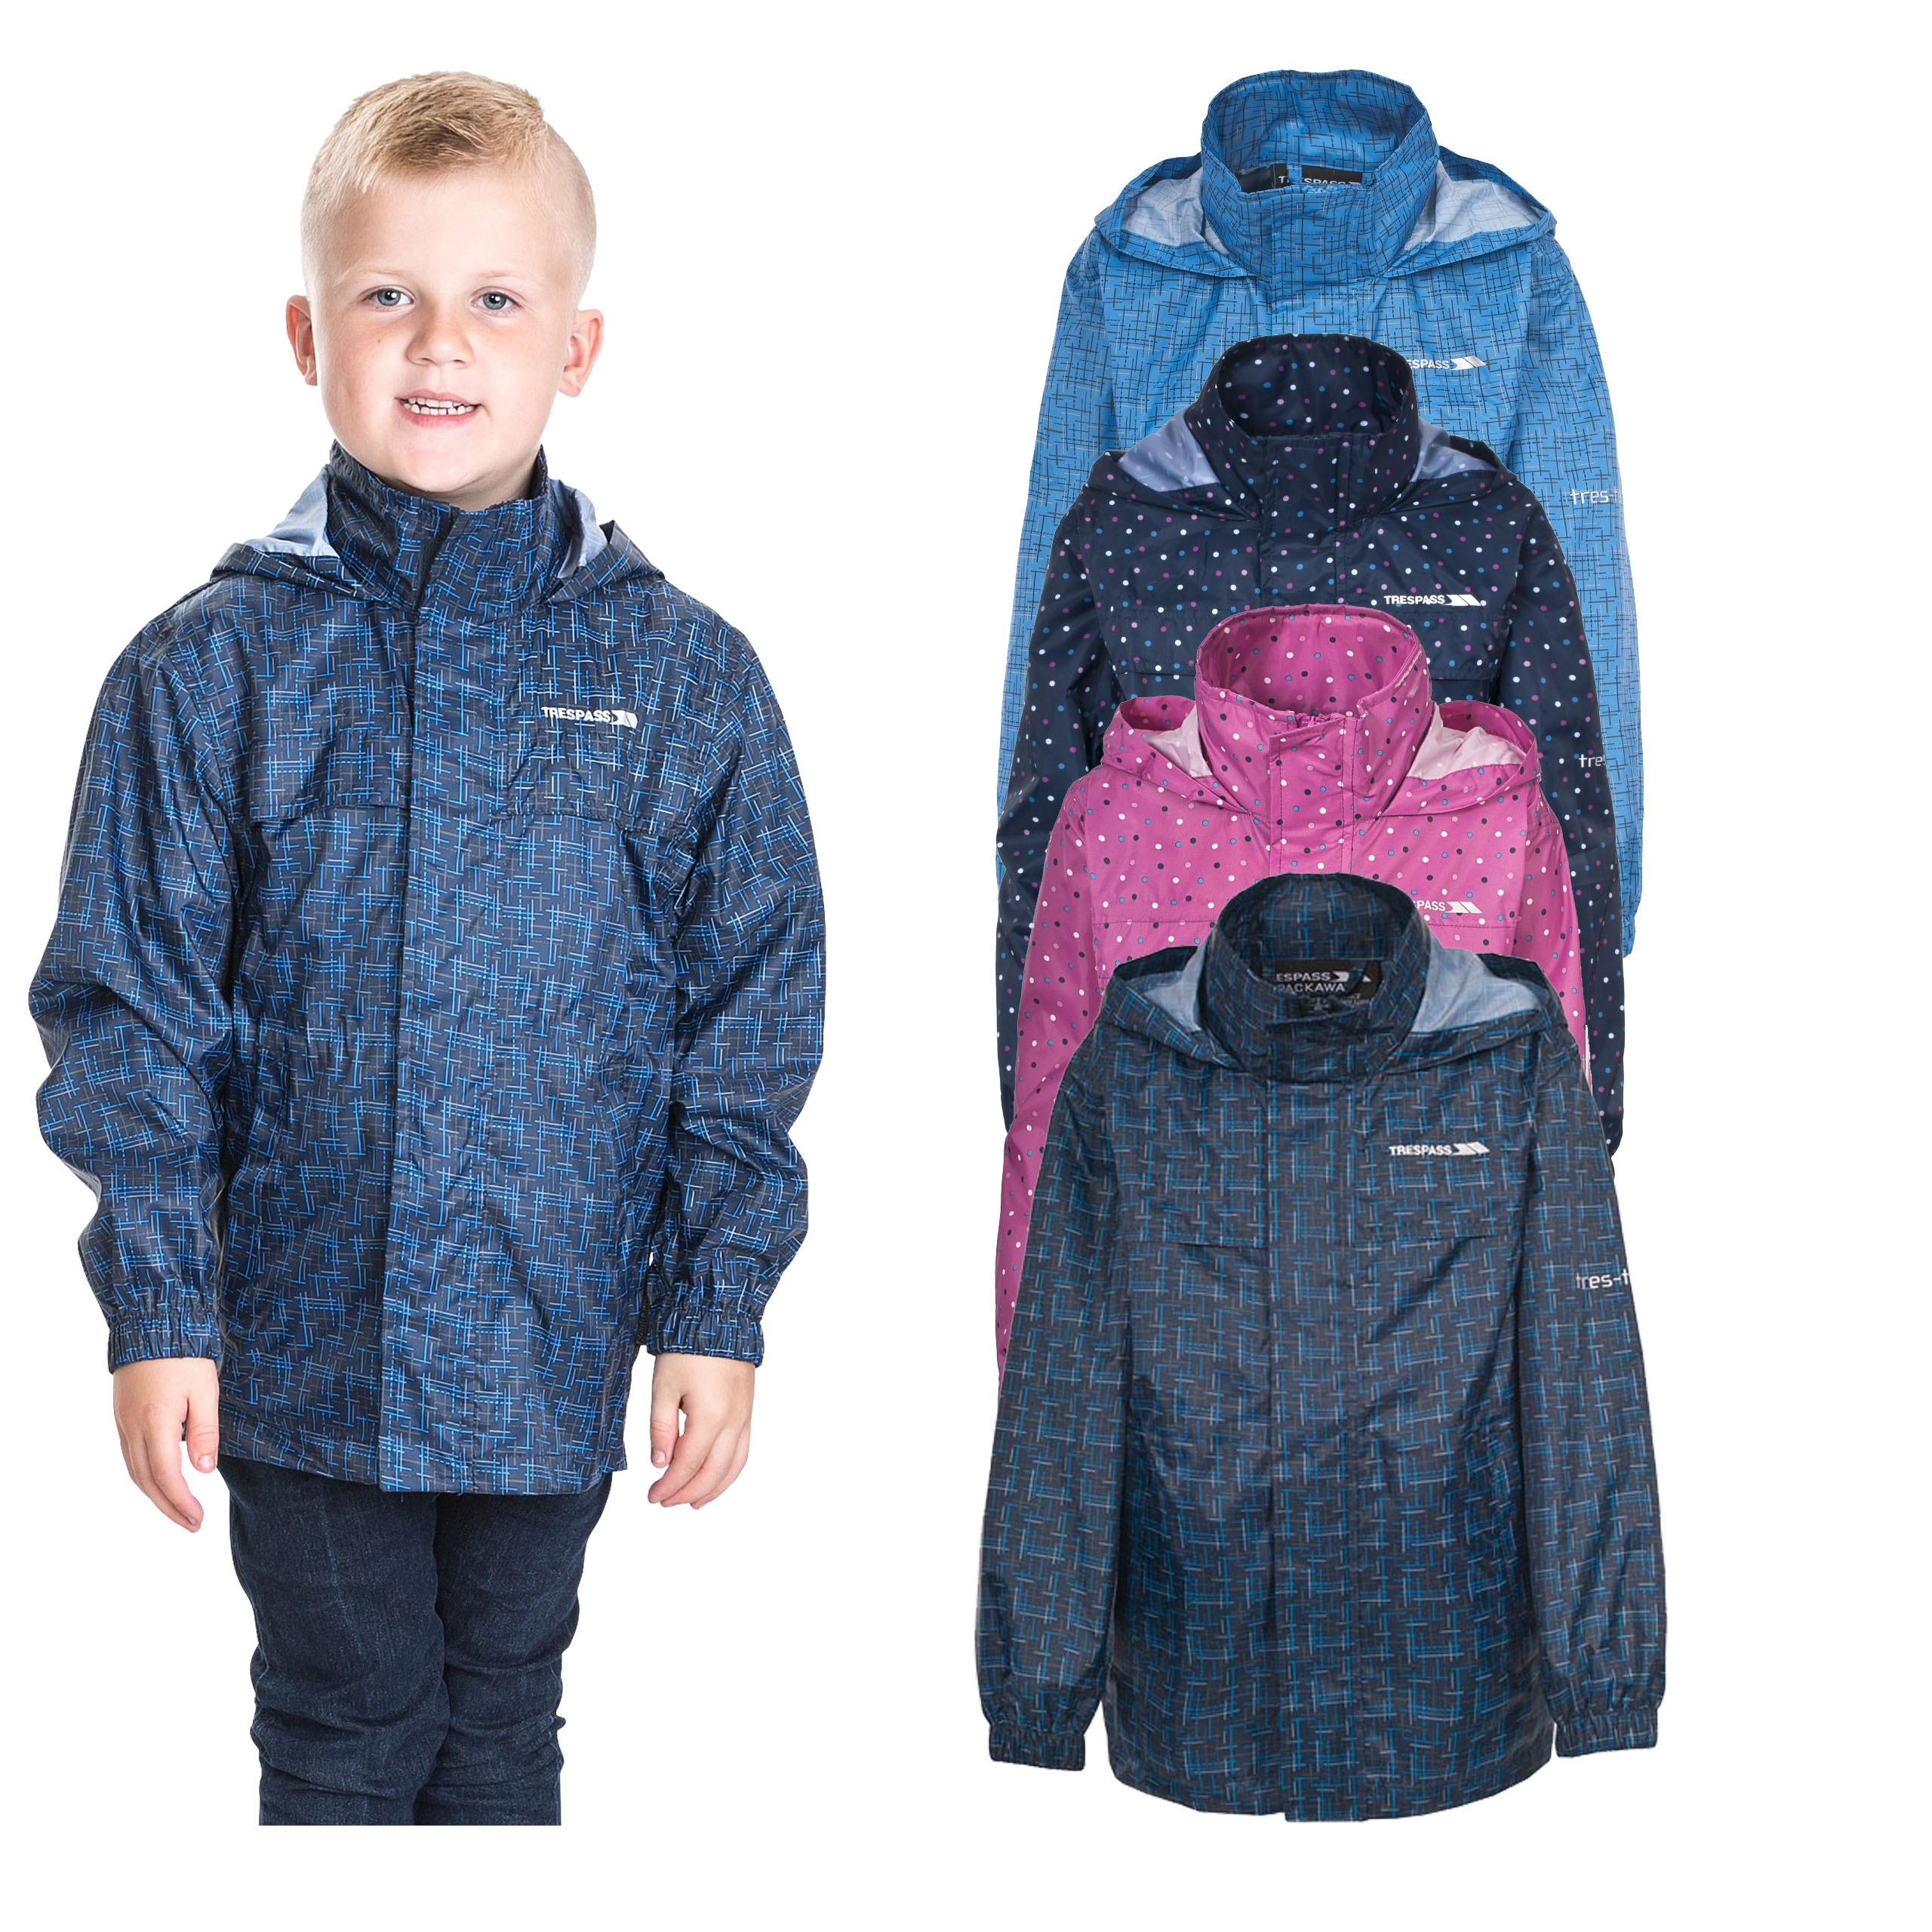 Trespass Childrens//Kids Neely II Waterproof Jacket